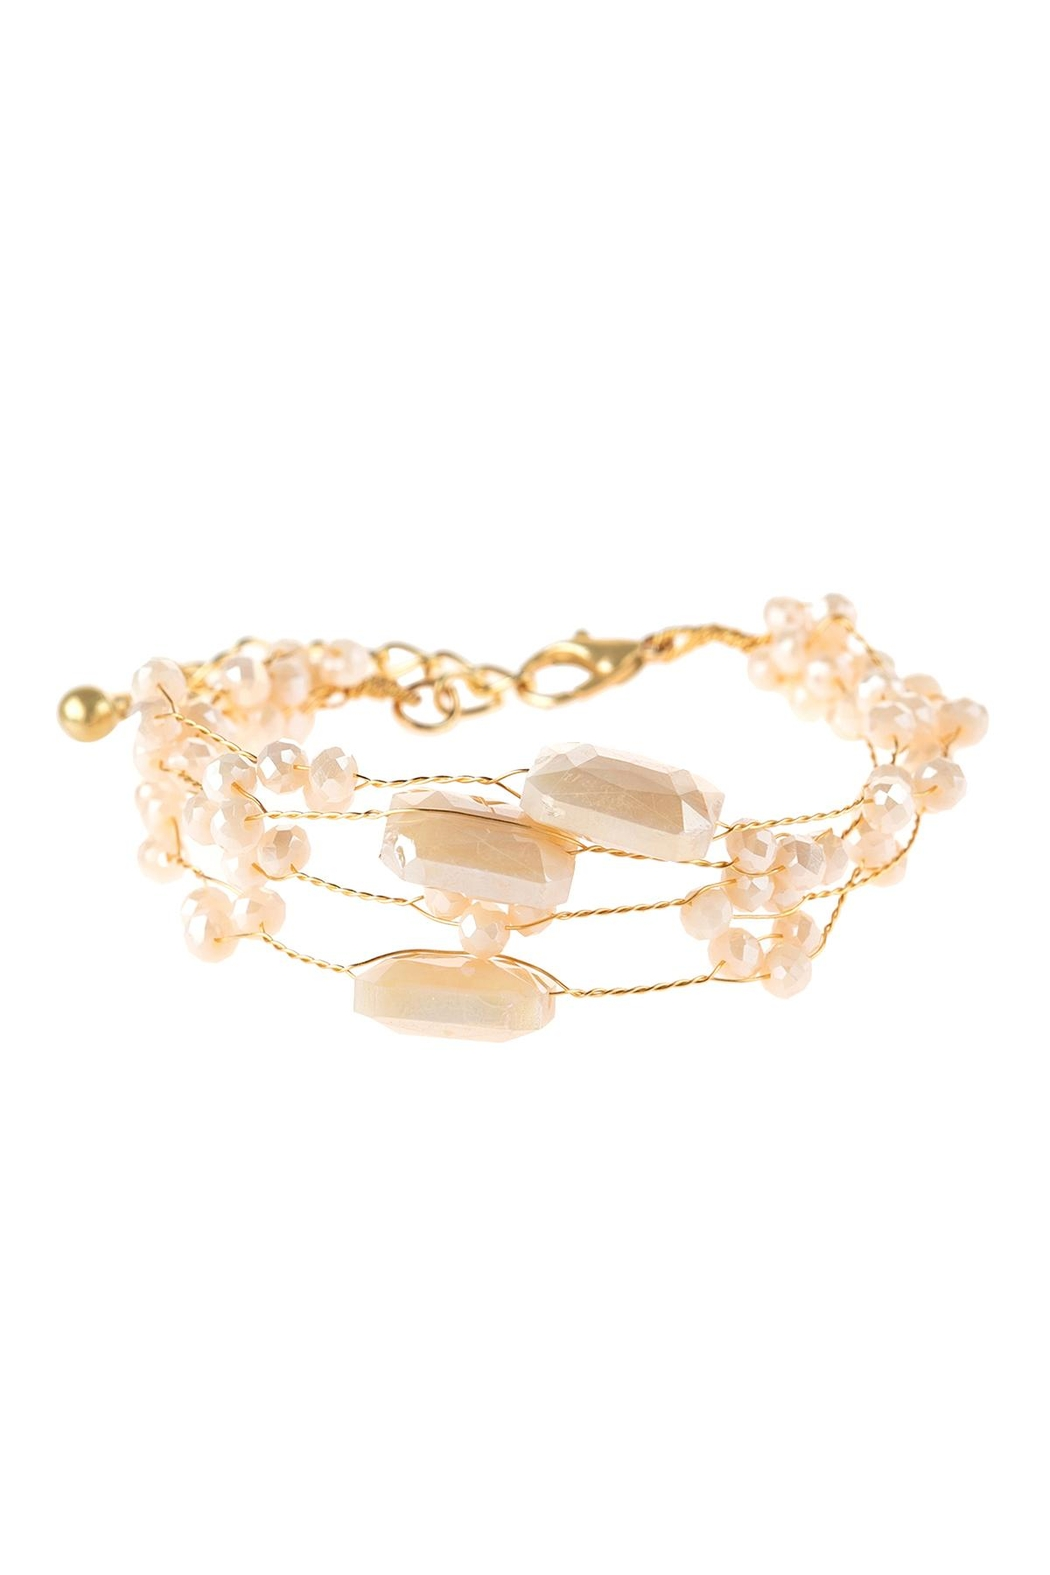 Riah Fashion Delicate Stone Beaded Bracelet - Main Image